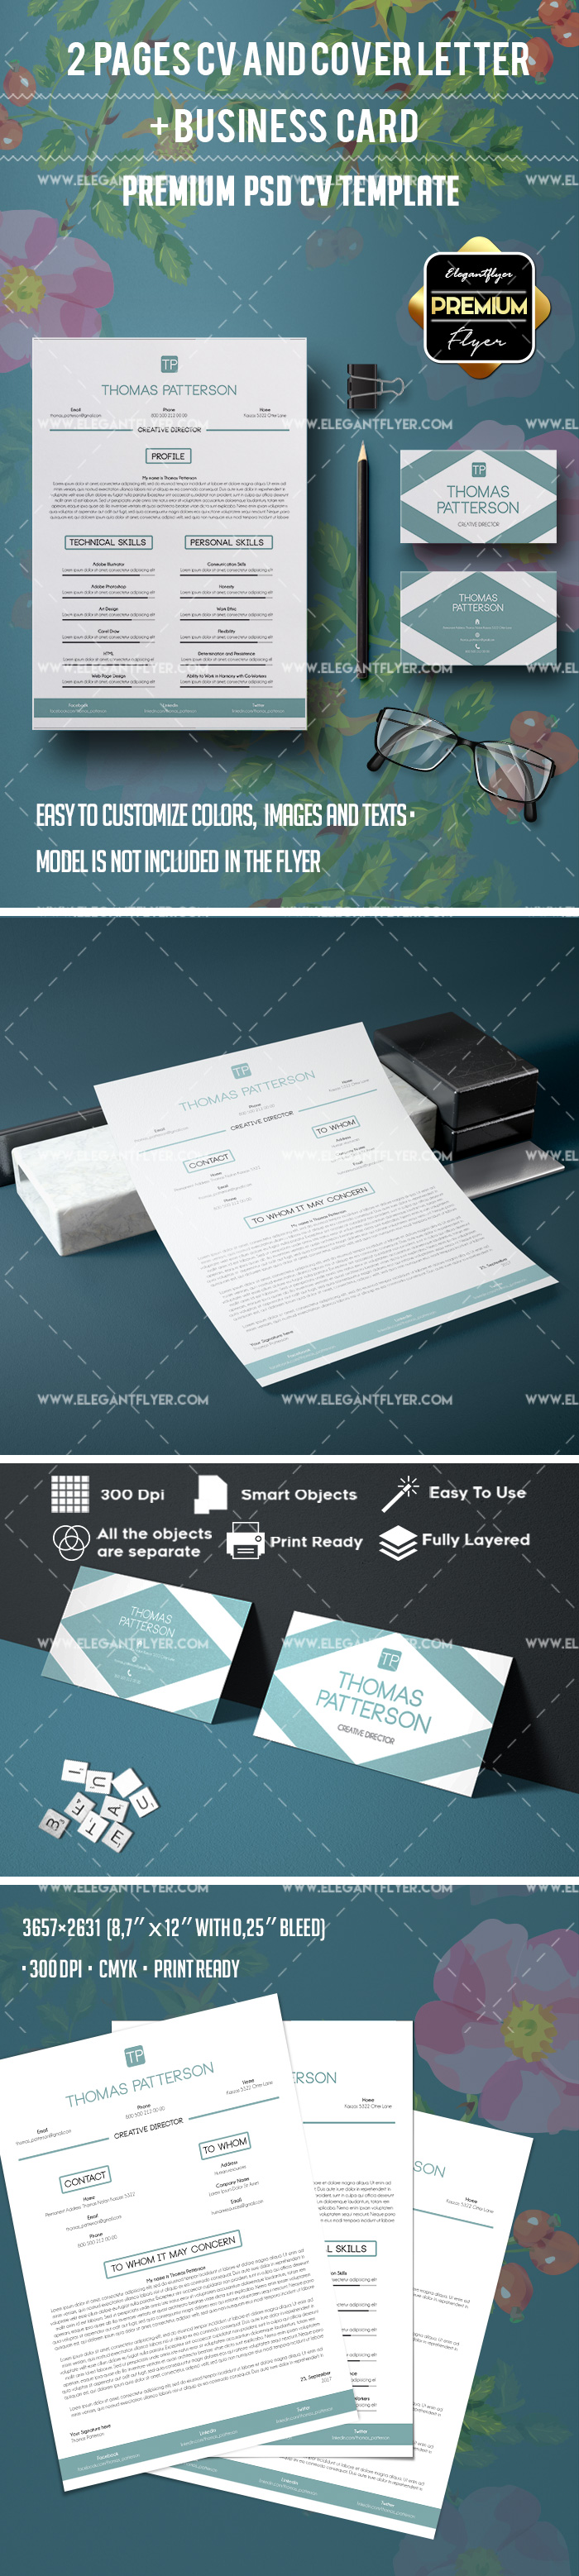 job resume template 2 pages business card by elegantflyer. Black Bedroom Furniture Sets. Home Design Ideas